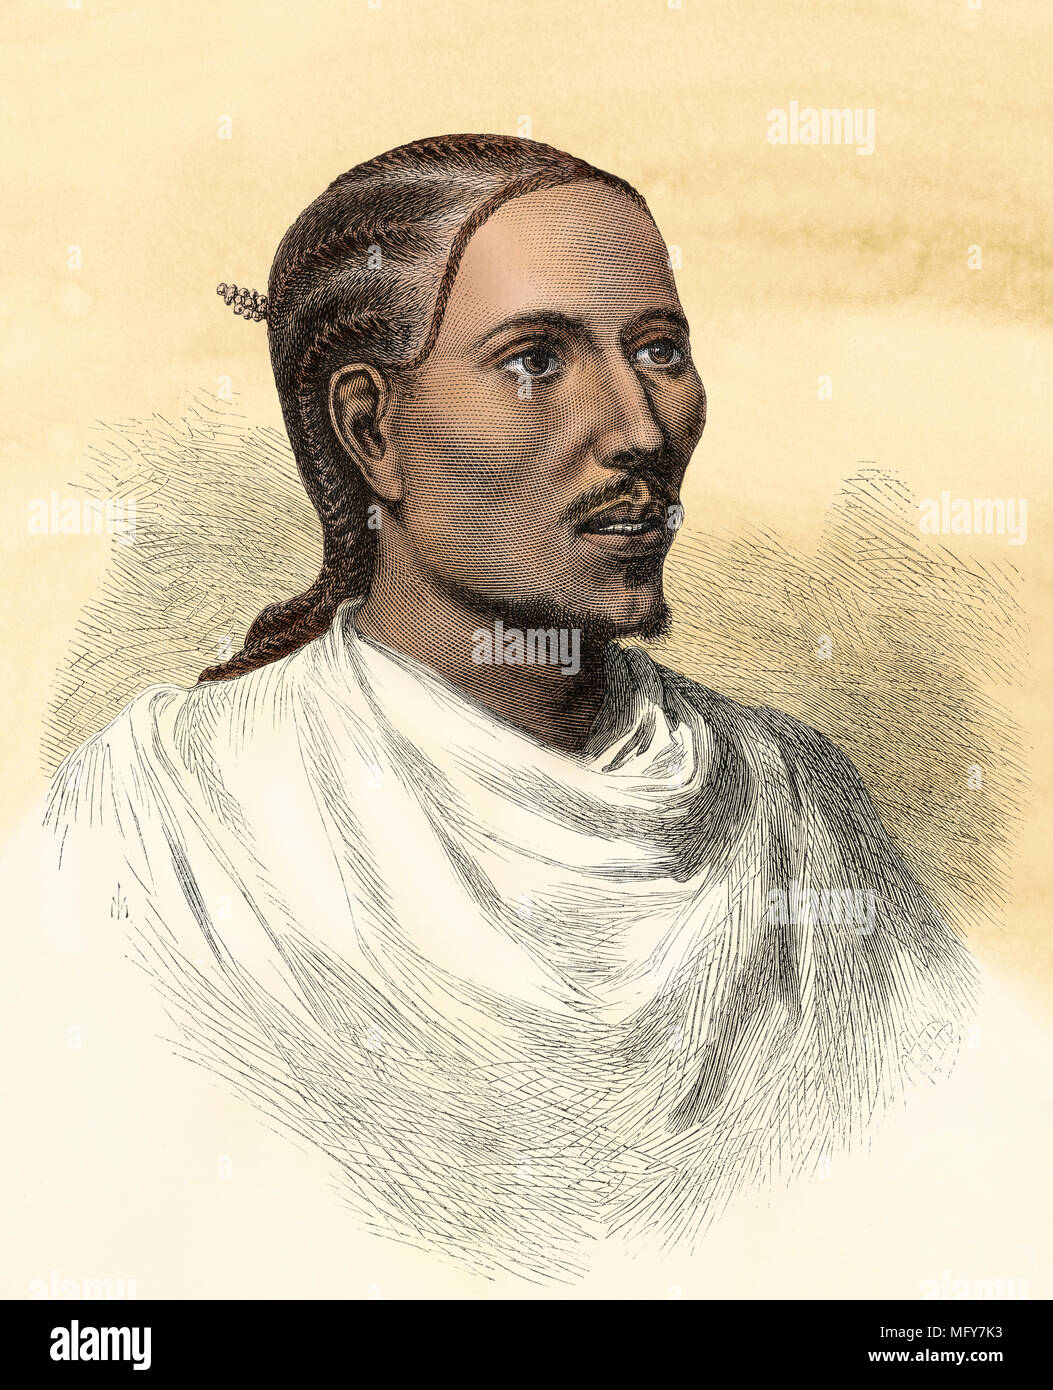 Dejazmach Kessai, Prince of Tigray (later Yohannes IV, King of Ethiopia), 1868. Digitally colored woodcut - Stock Image